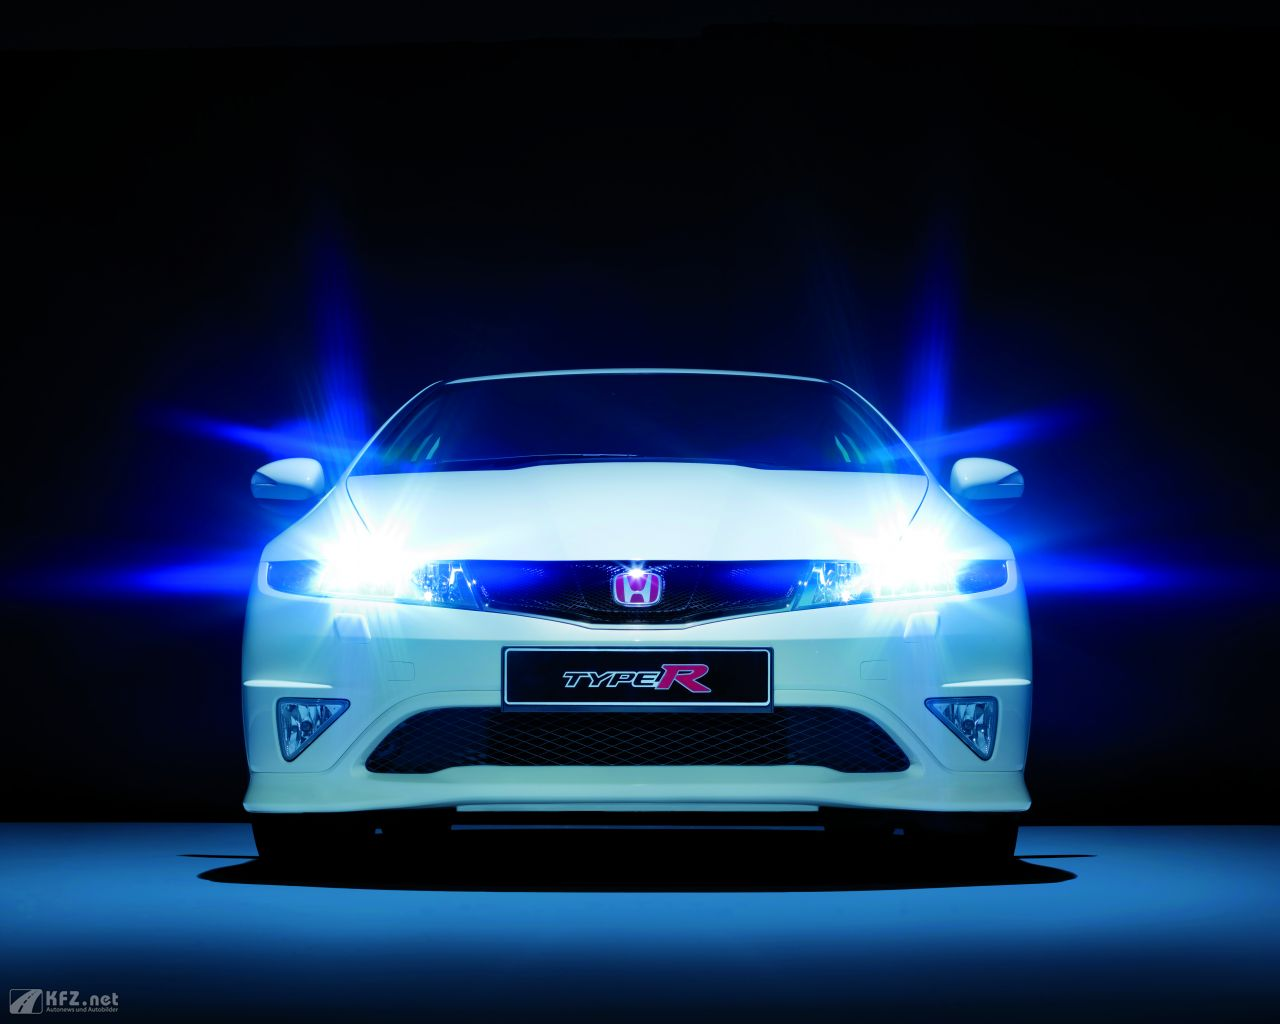 honda-civic-1280x1024-161